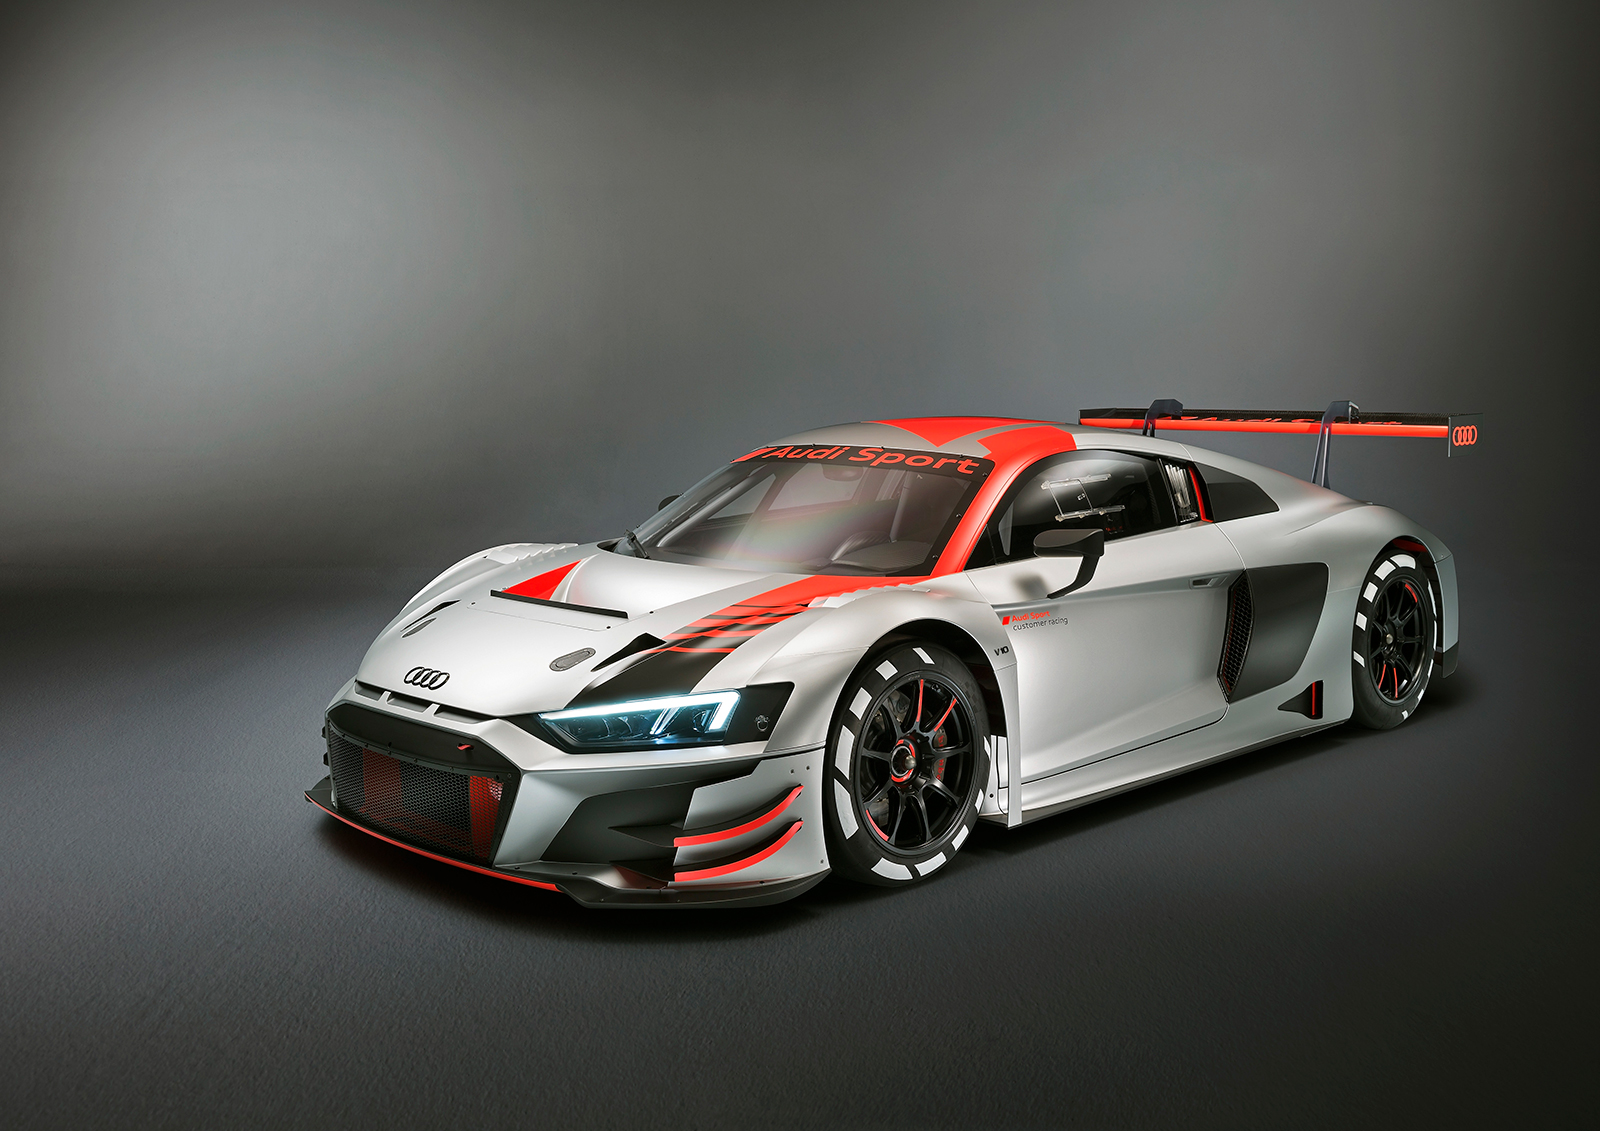 2019 audi r8 lms gt3 is ready to go racing  u00bb autoguide com news